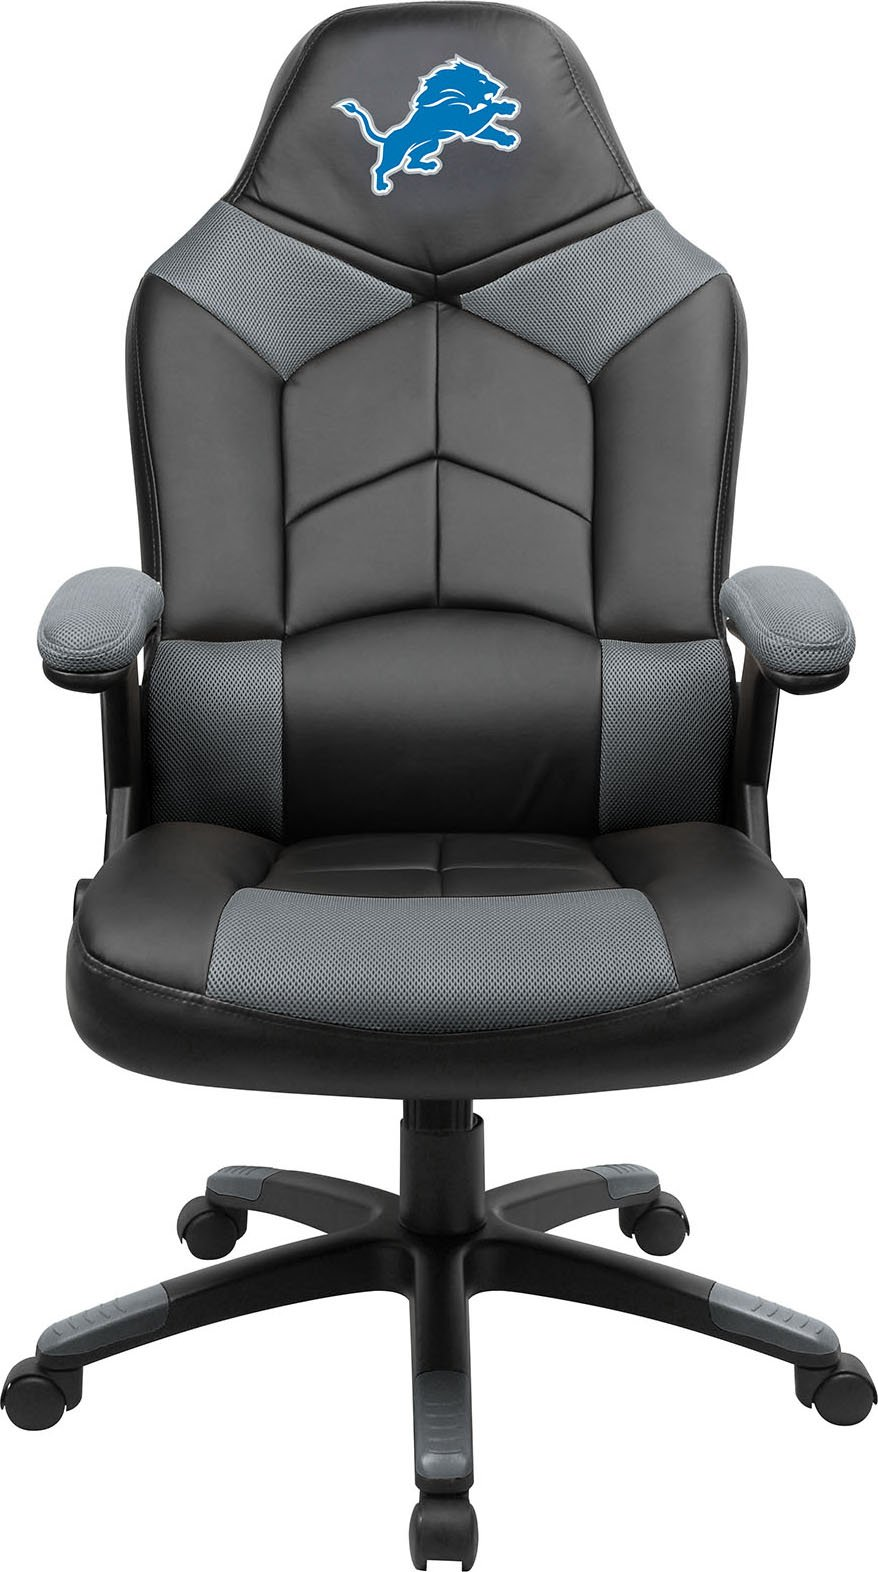 Imperial Officially Licensed NFL Furniture; Oversized Gaming Chairs, Detroit Lions